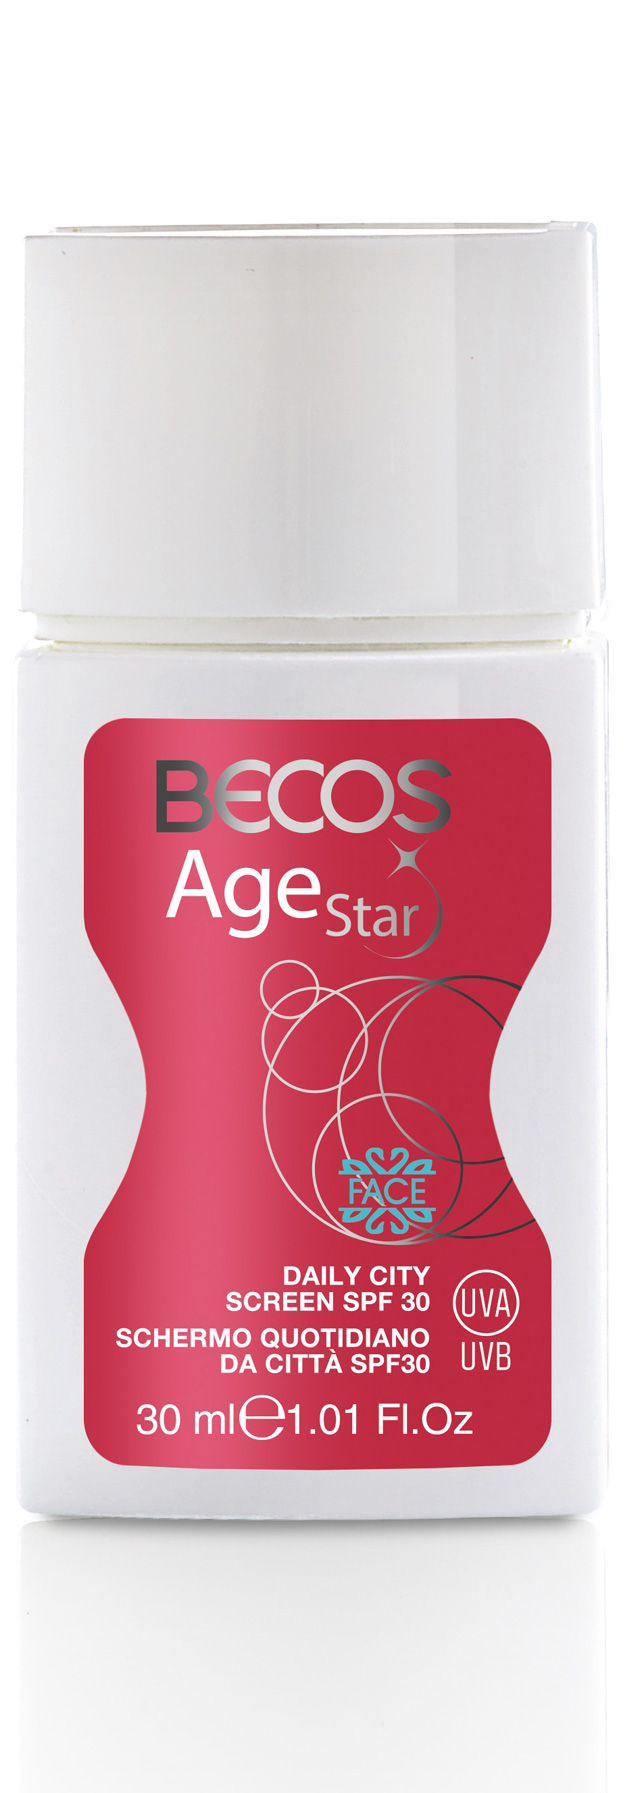 BECOS_Age Star